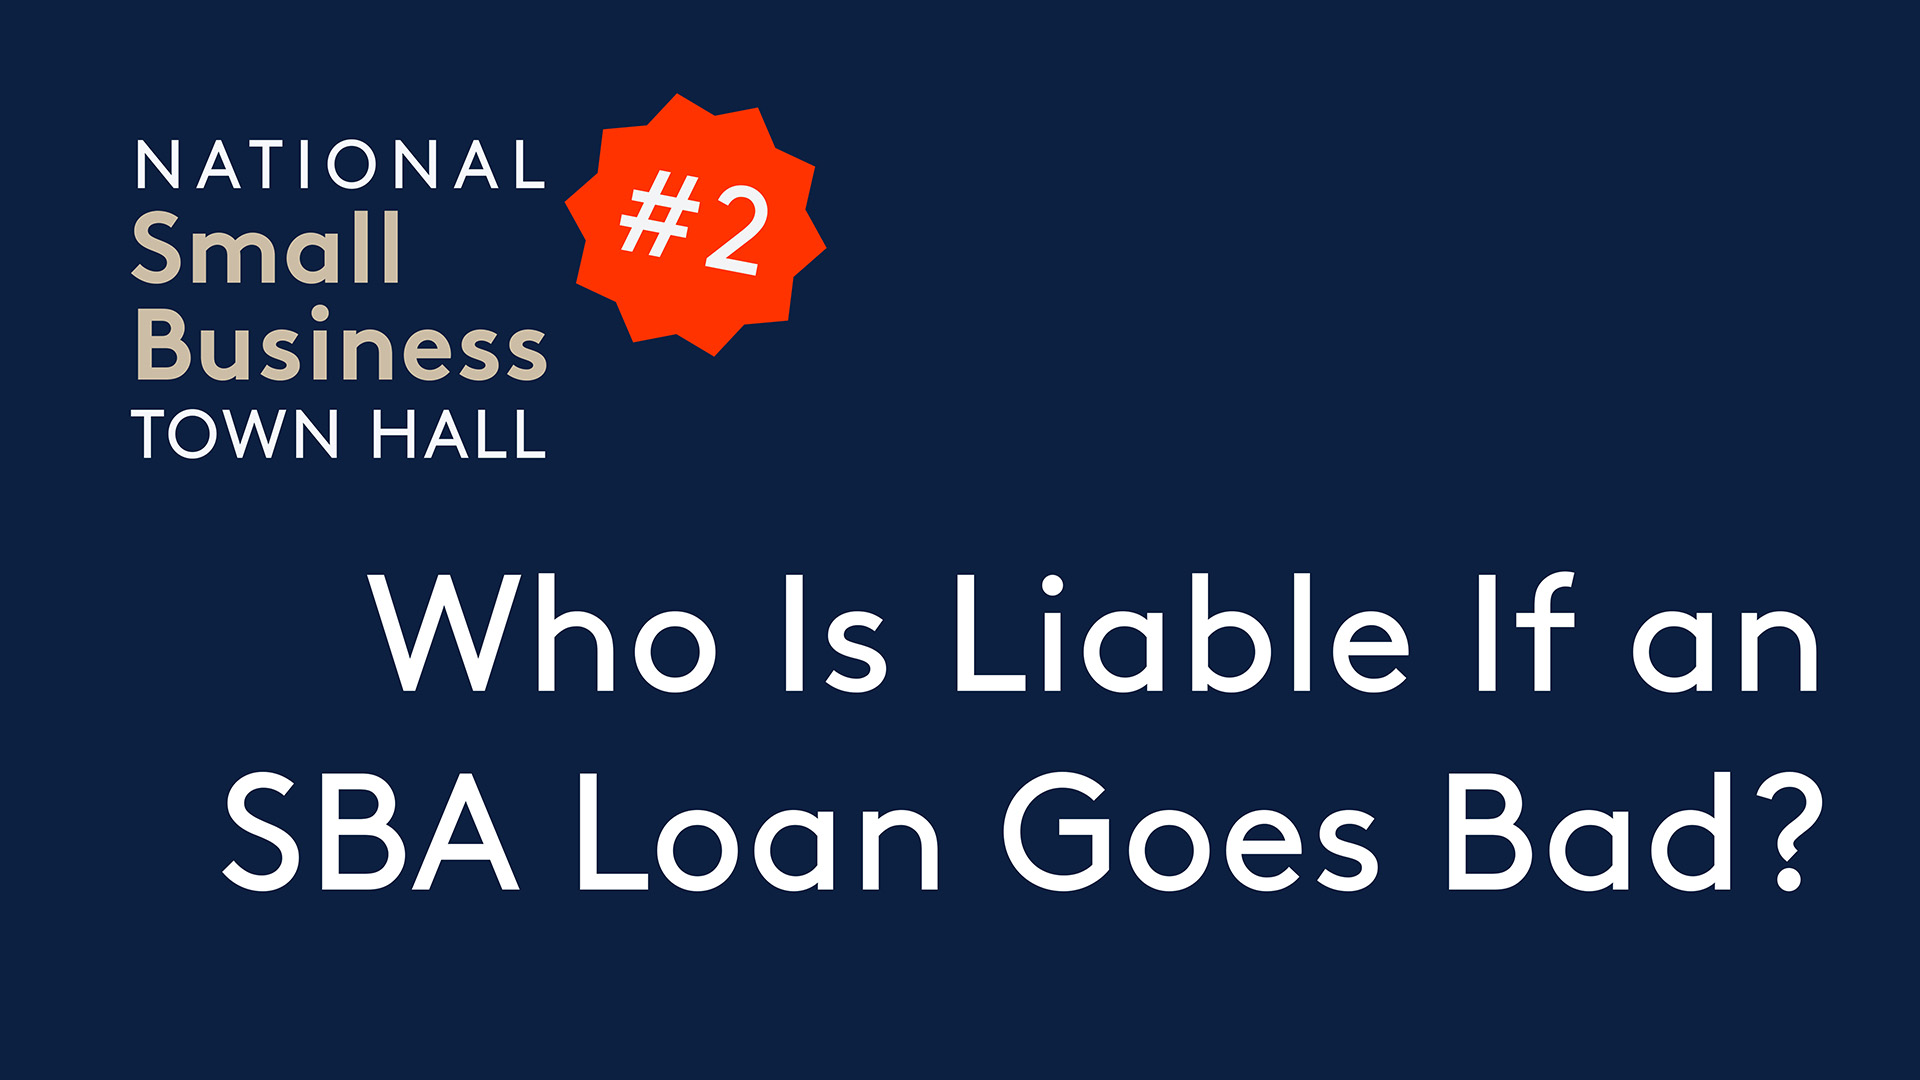 Who Is Liable If a SBA Loan Goes Bad? The Bank or the Business Owner